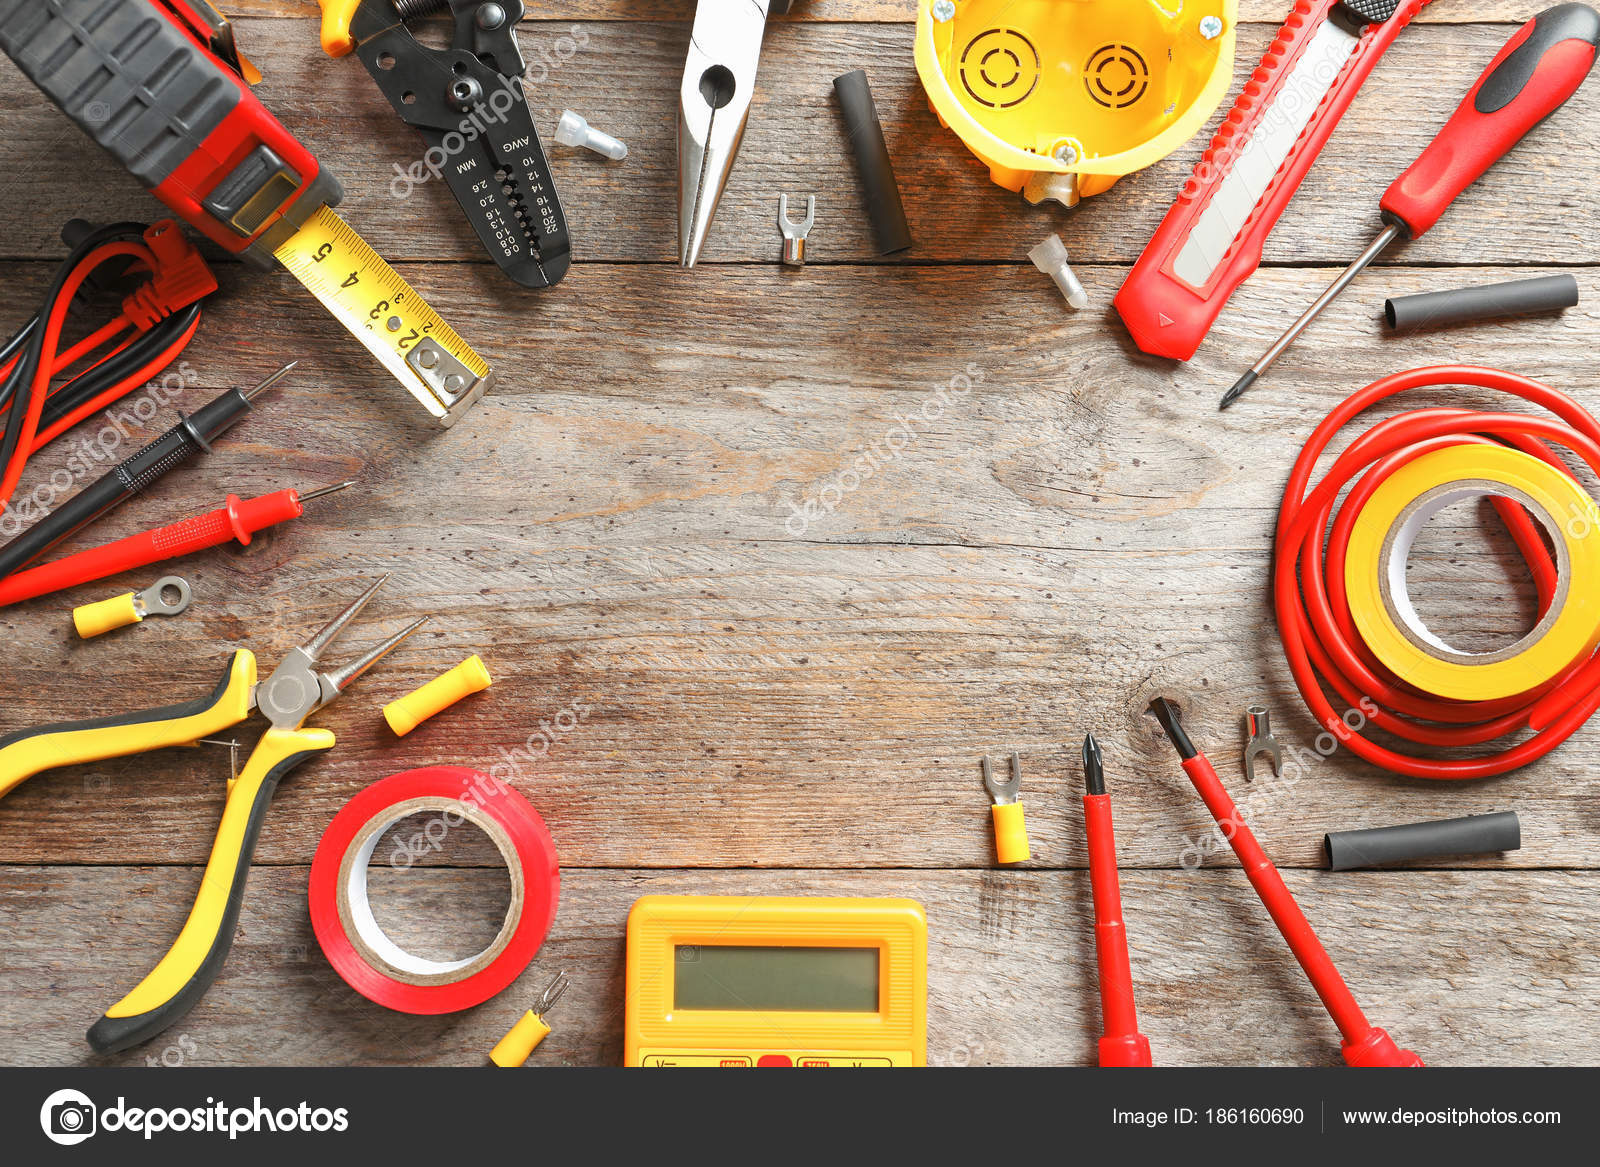 Different Electrical Tools On Wooden Background Stock Photo C Belchonock 186160690